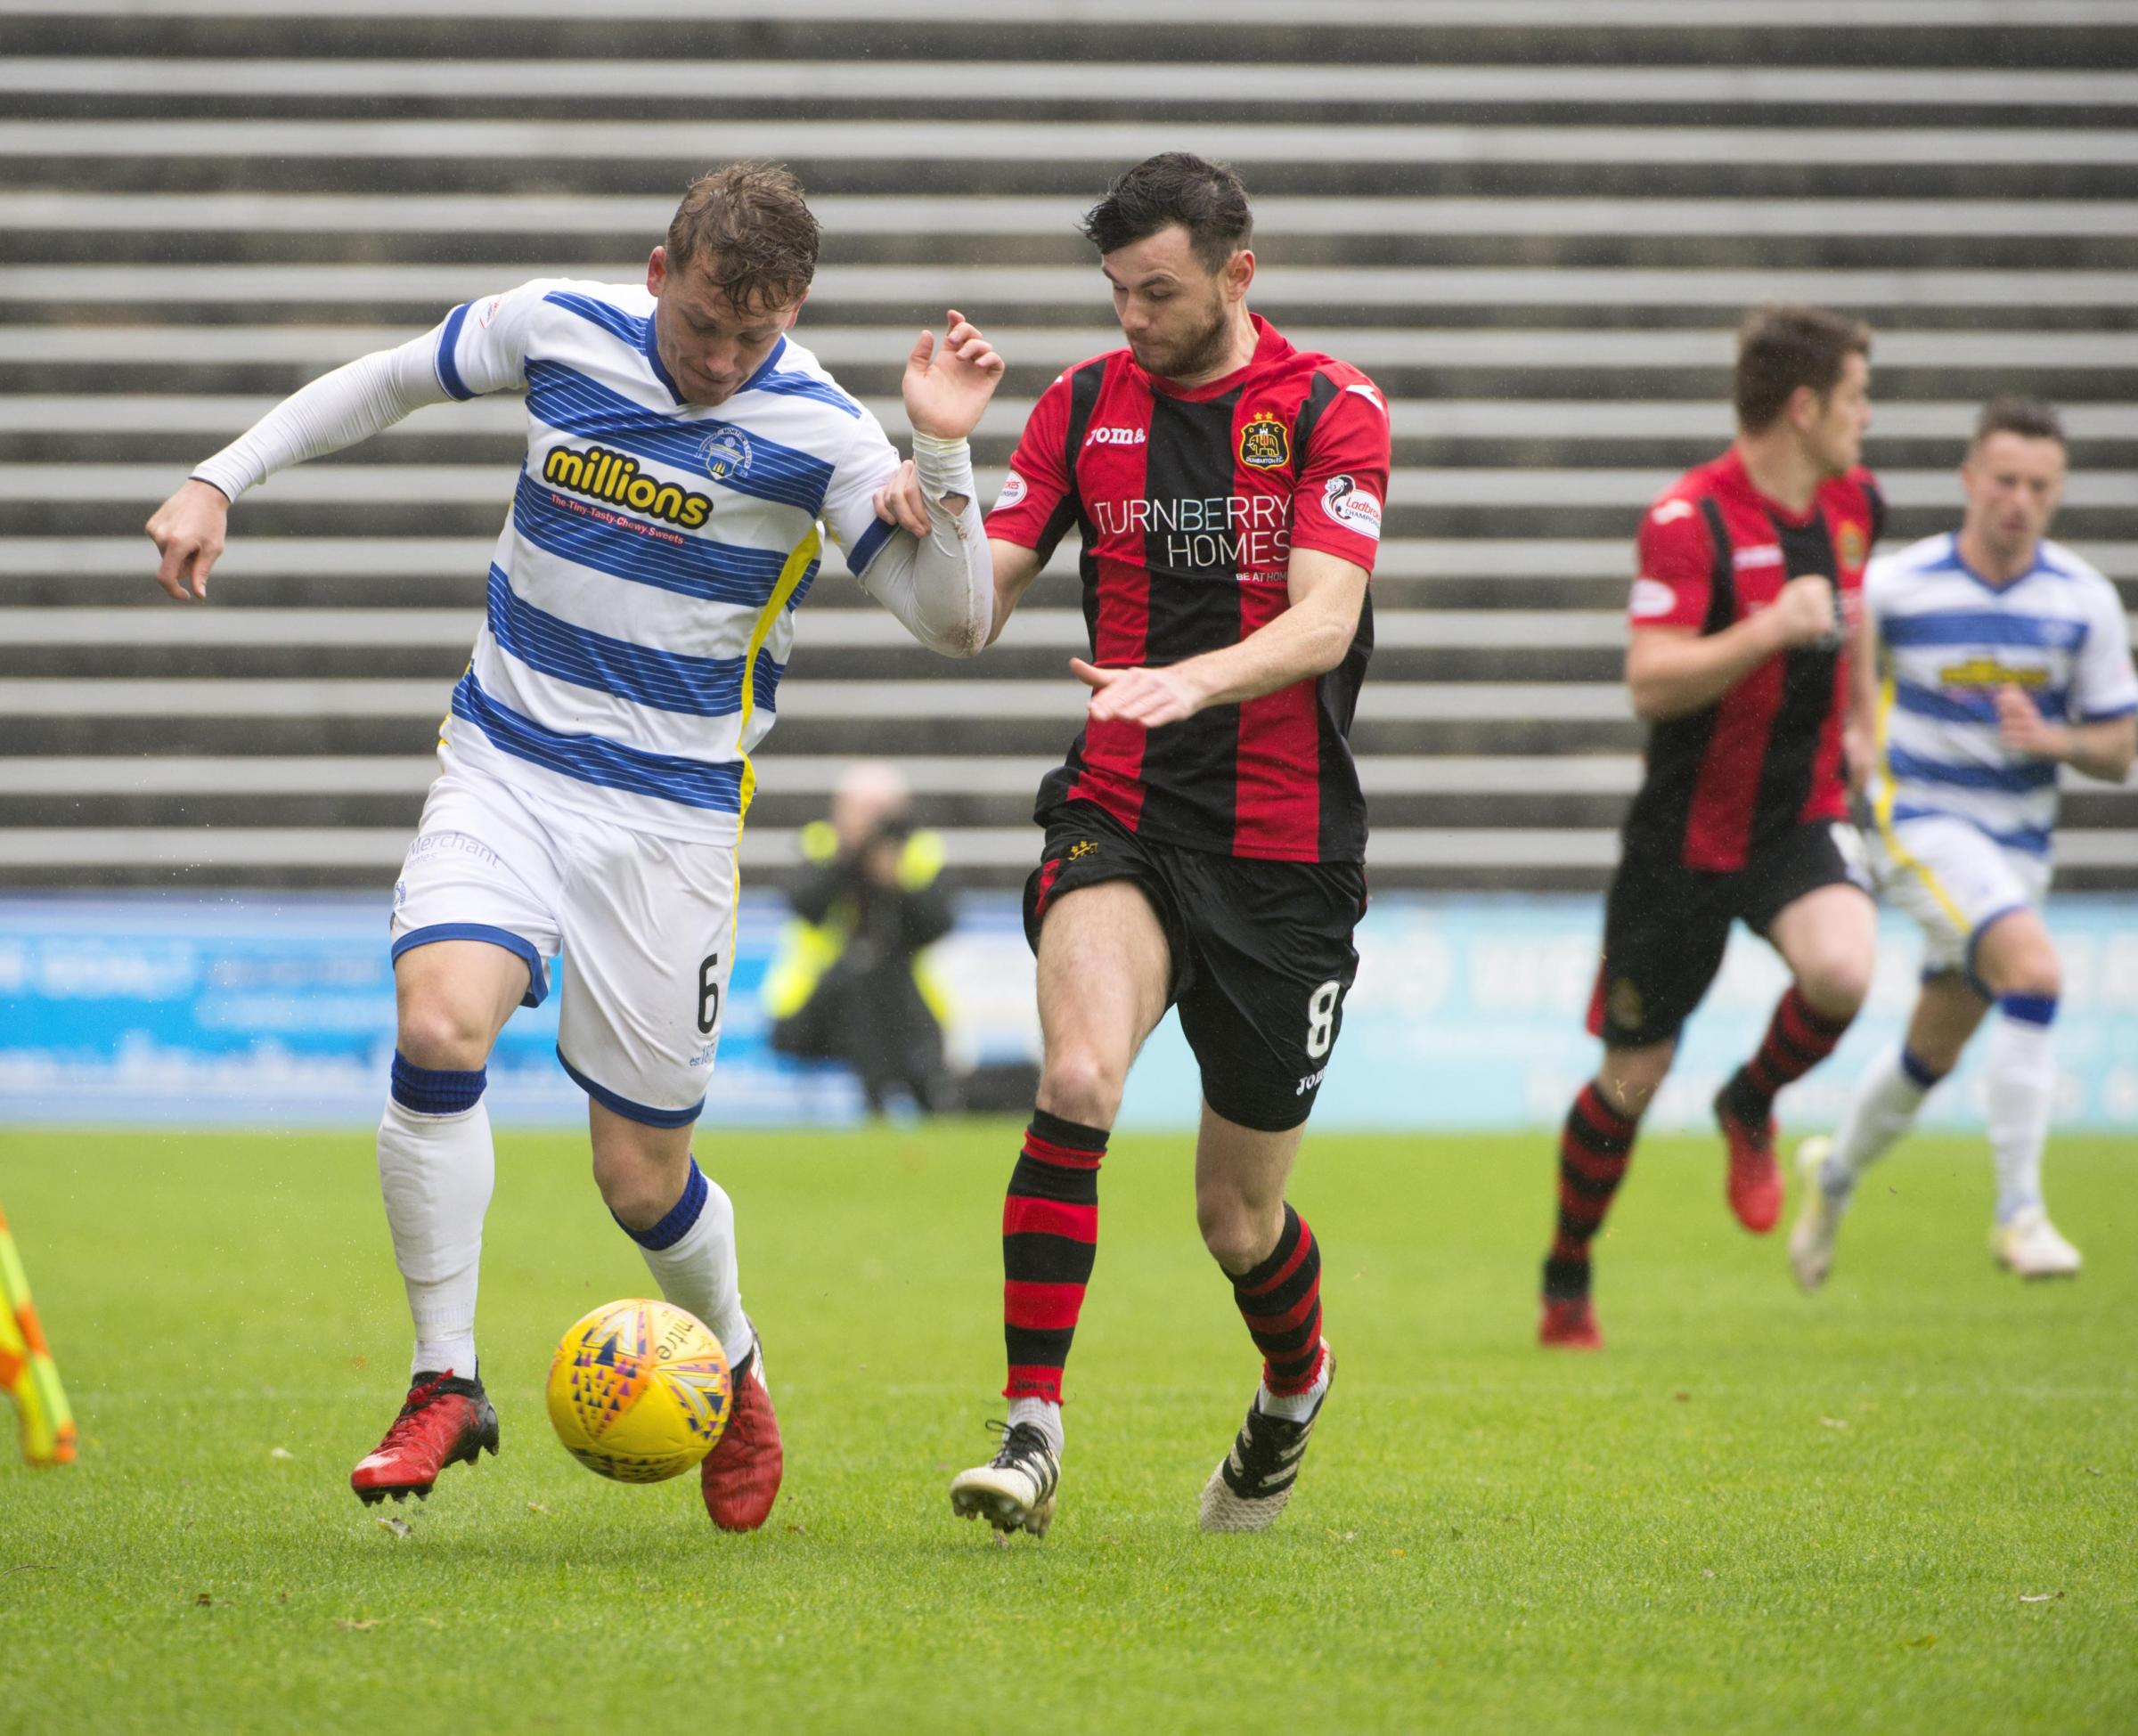 Greenock Morton 1 Dumbarton 1: Sons cling on for hard-fought point